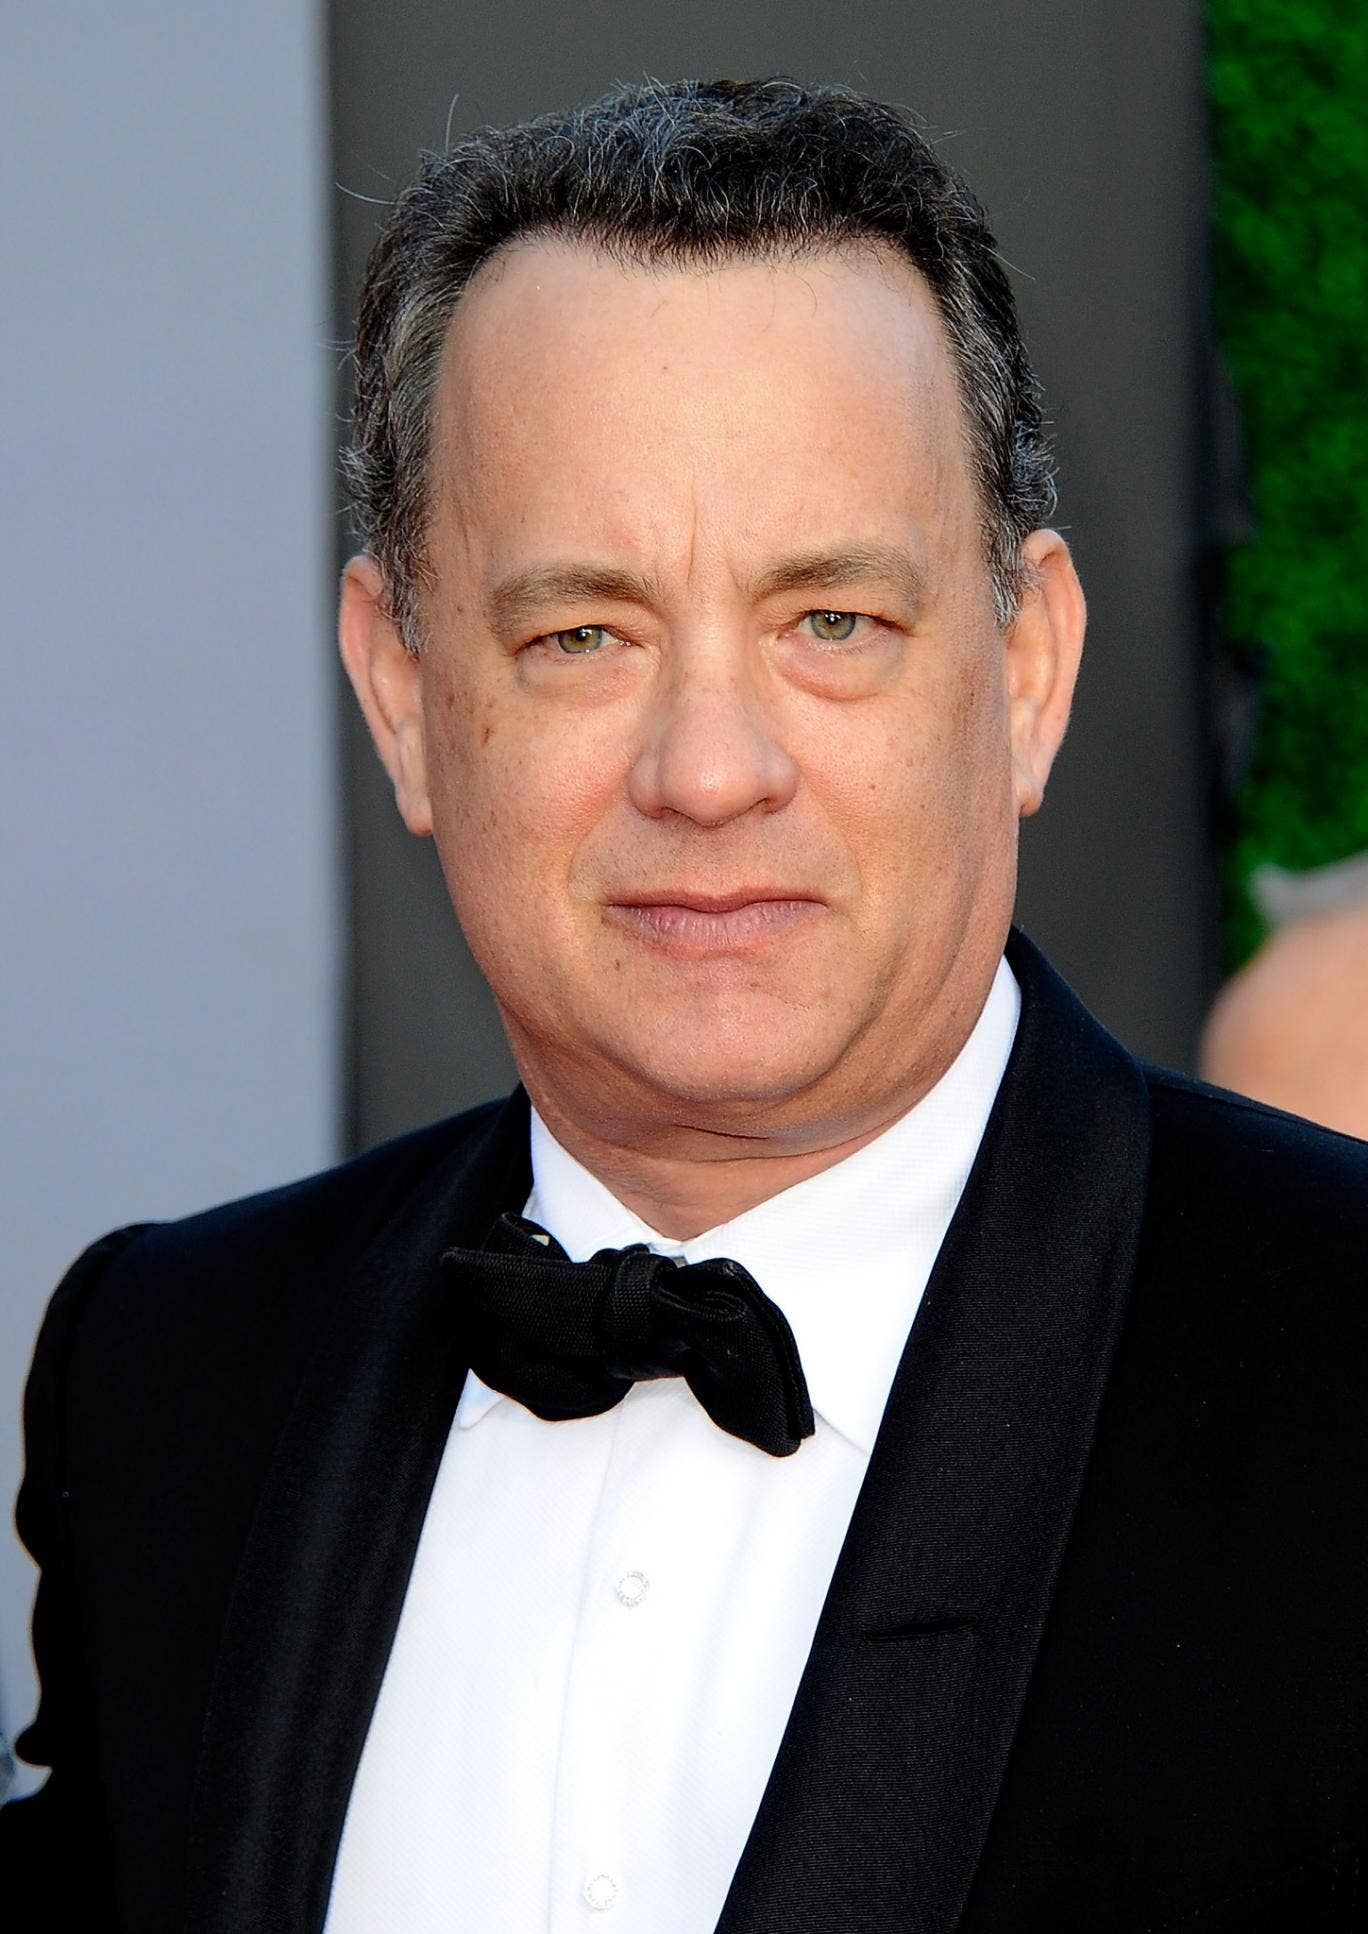 The actor Tom Hanks was on jury duty in Los Angeles this week